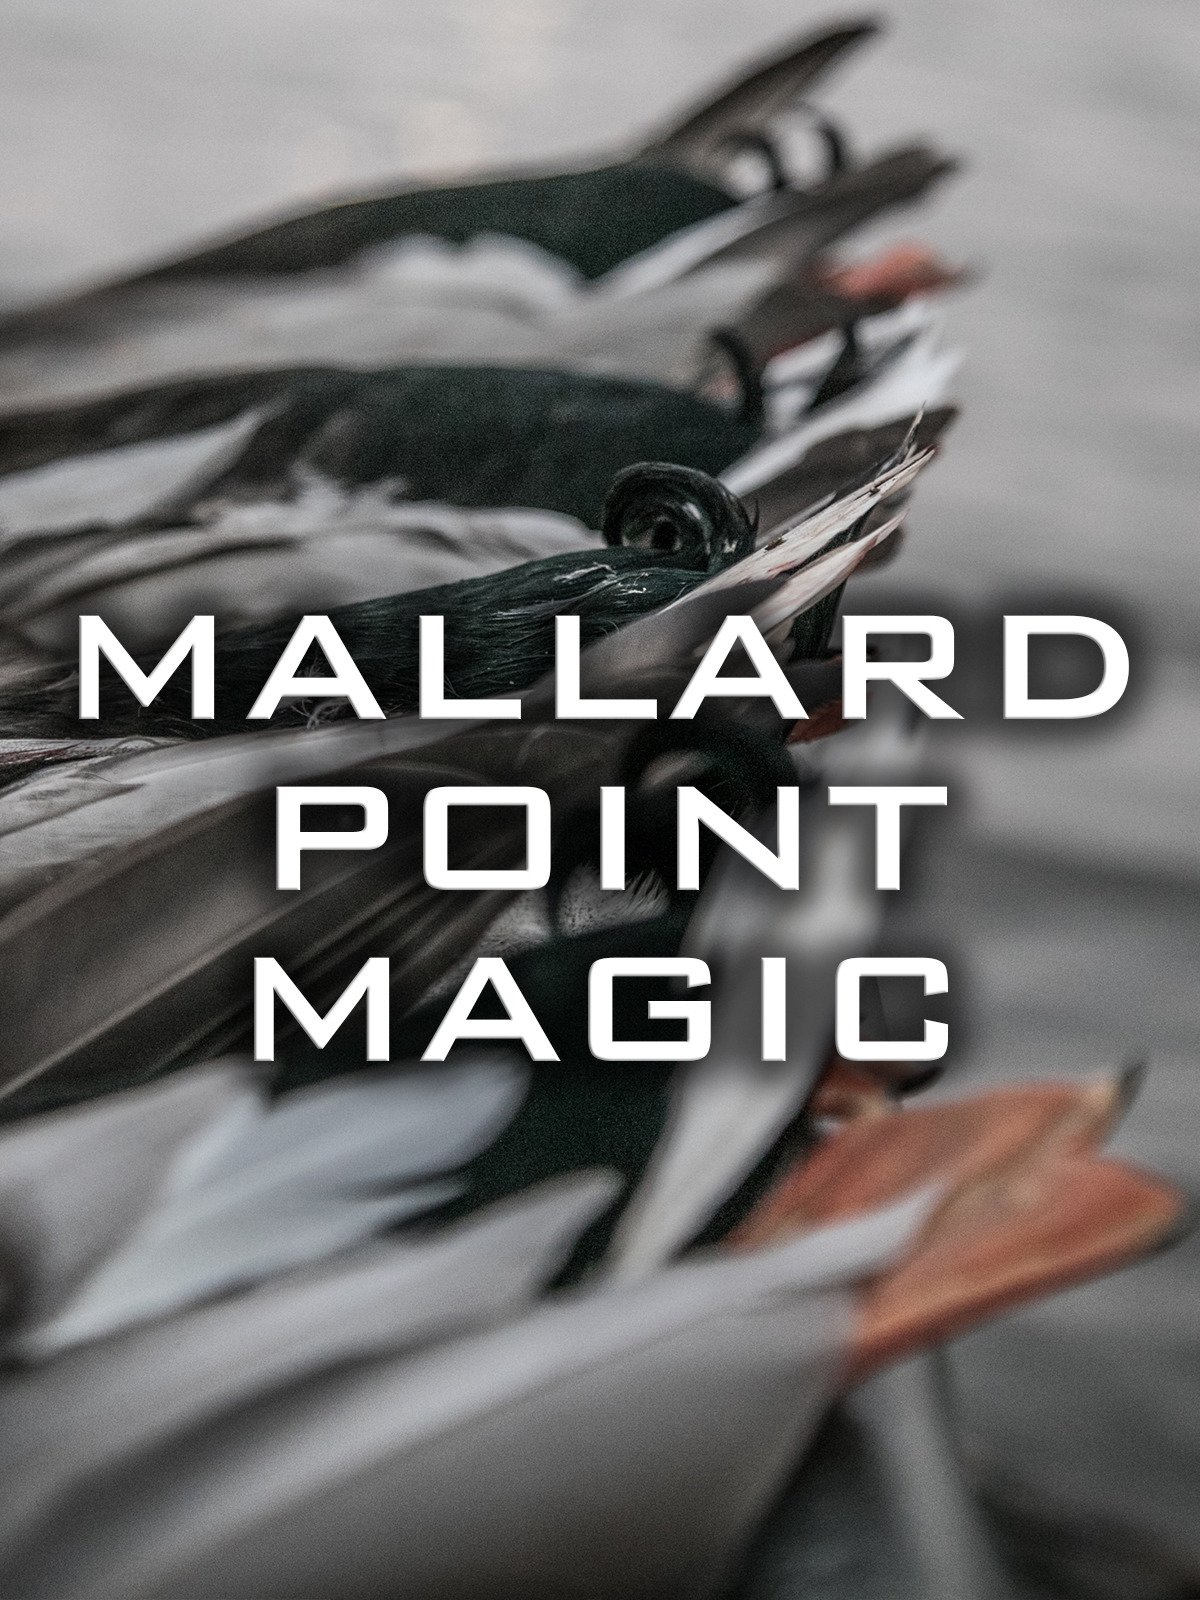 Mallard Point Magic